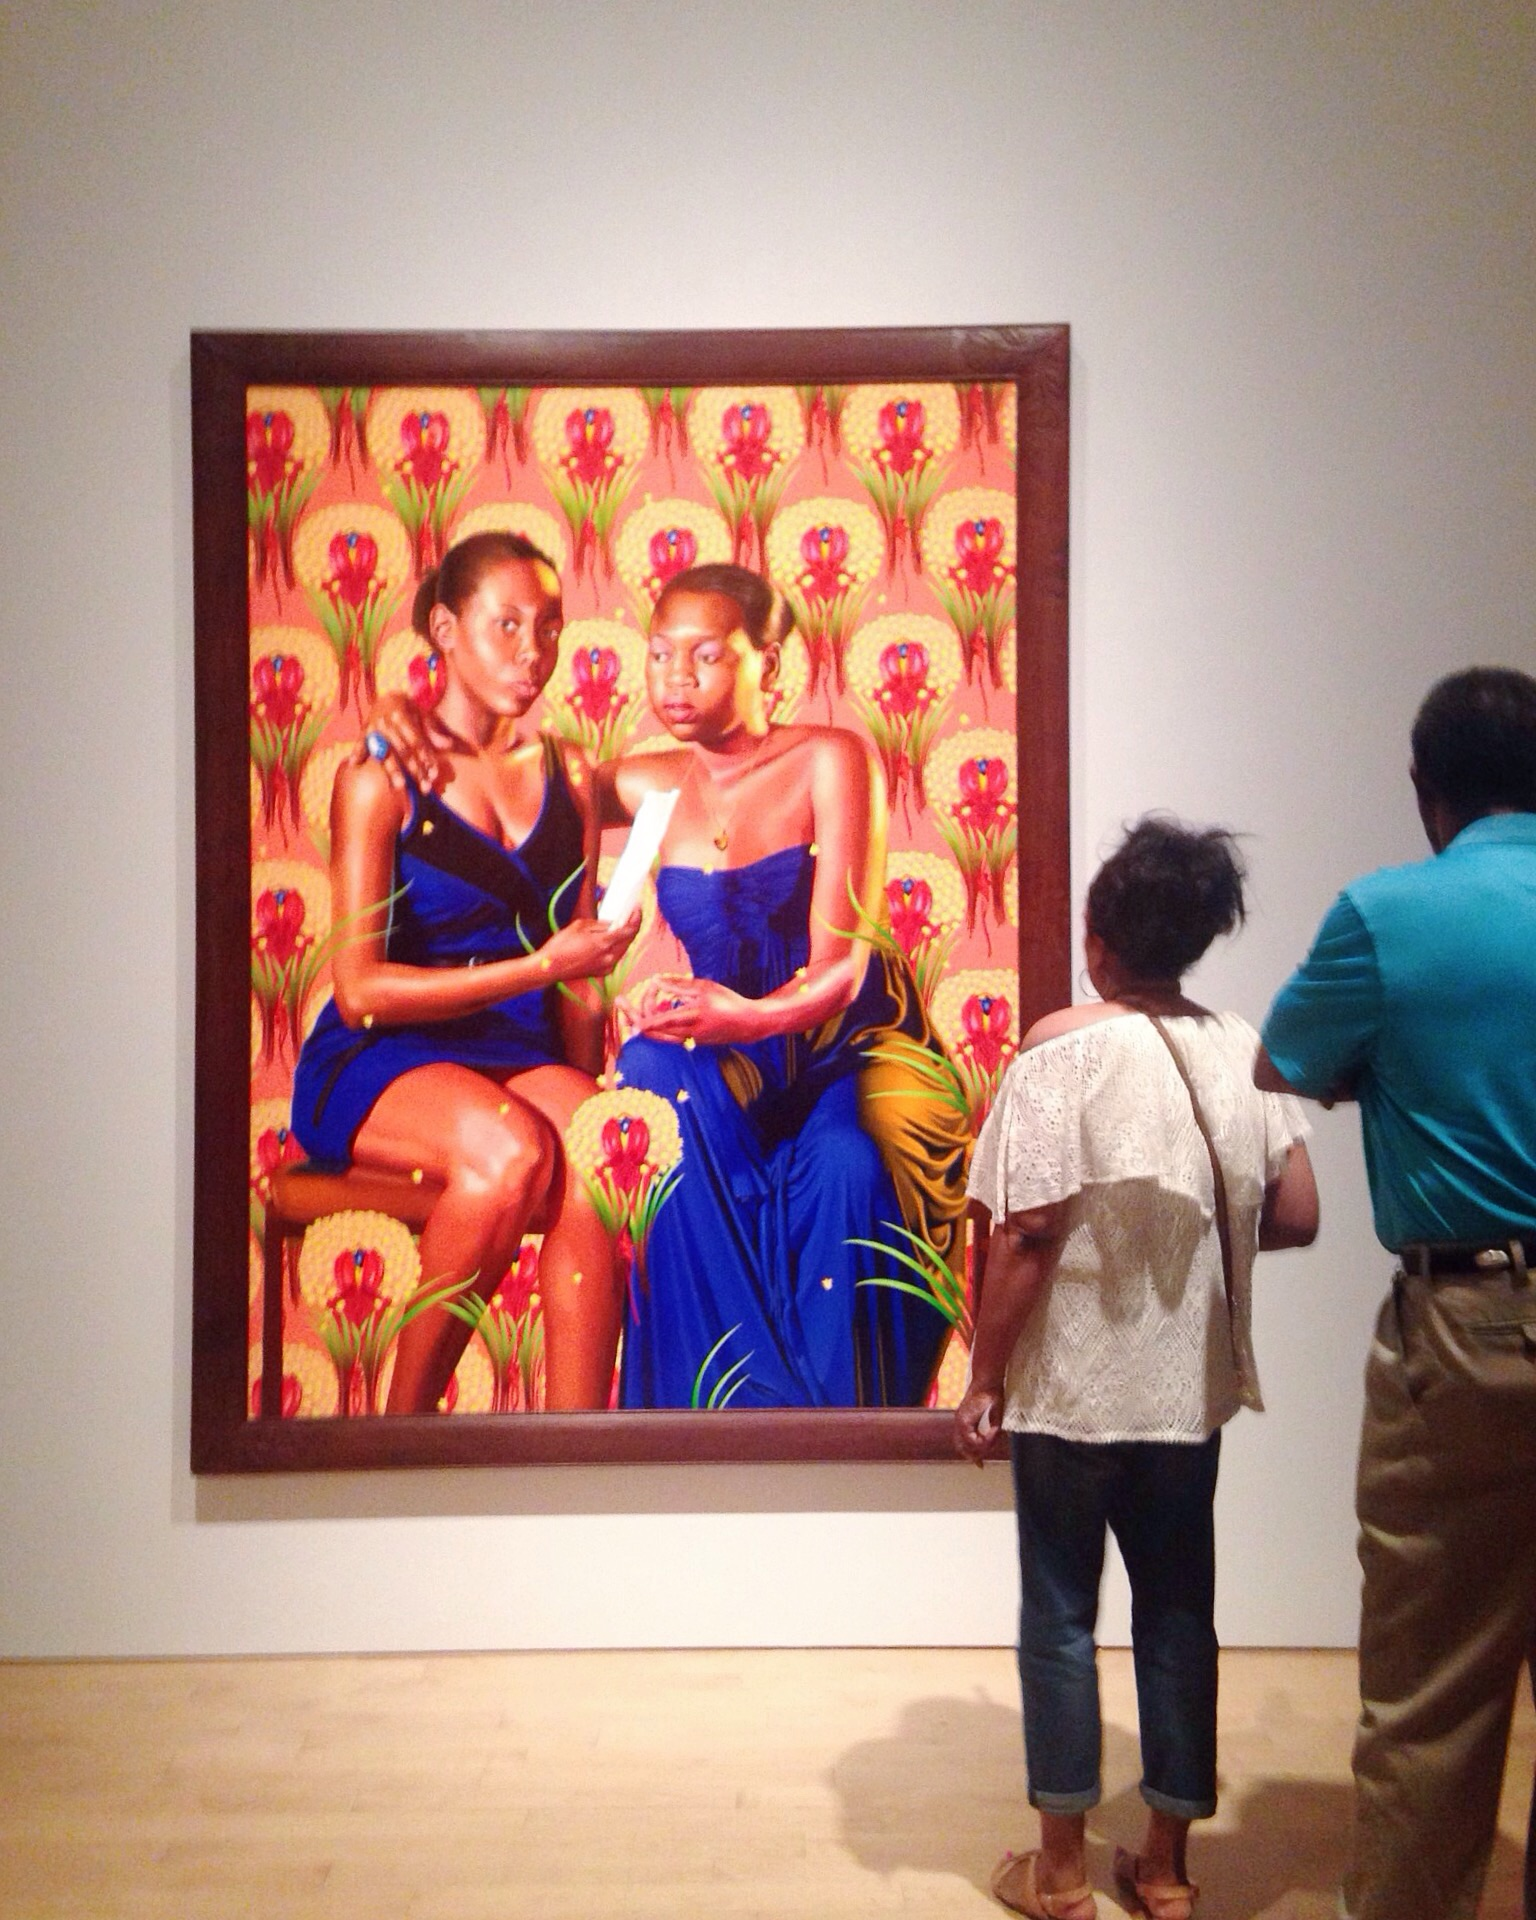 Kehinde Wiley art